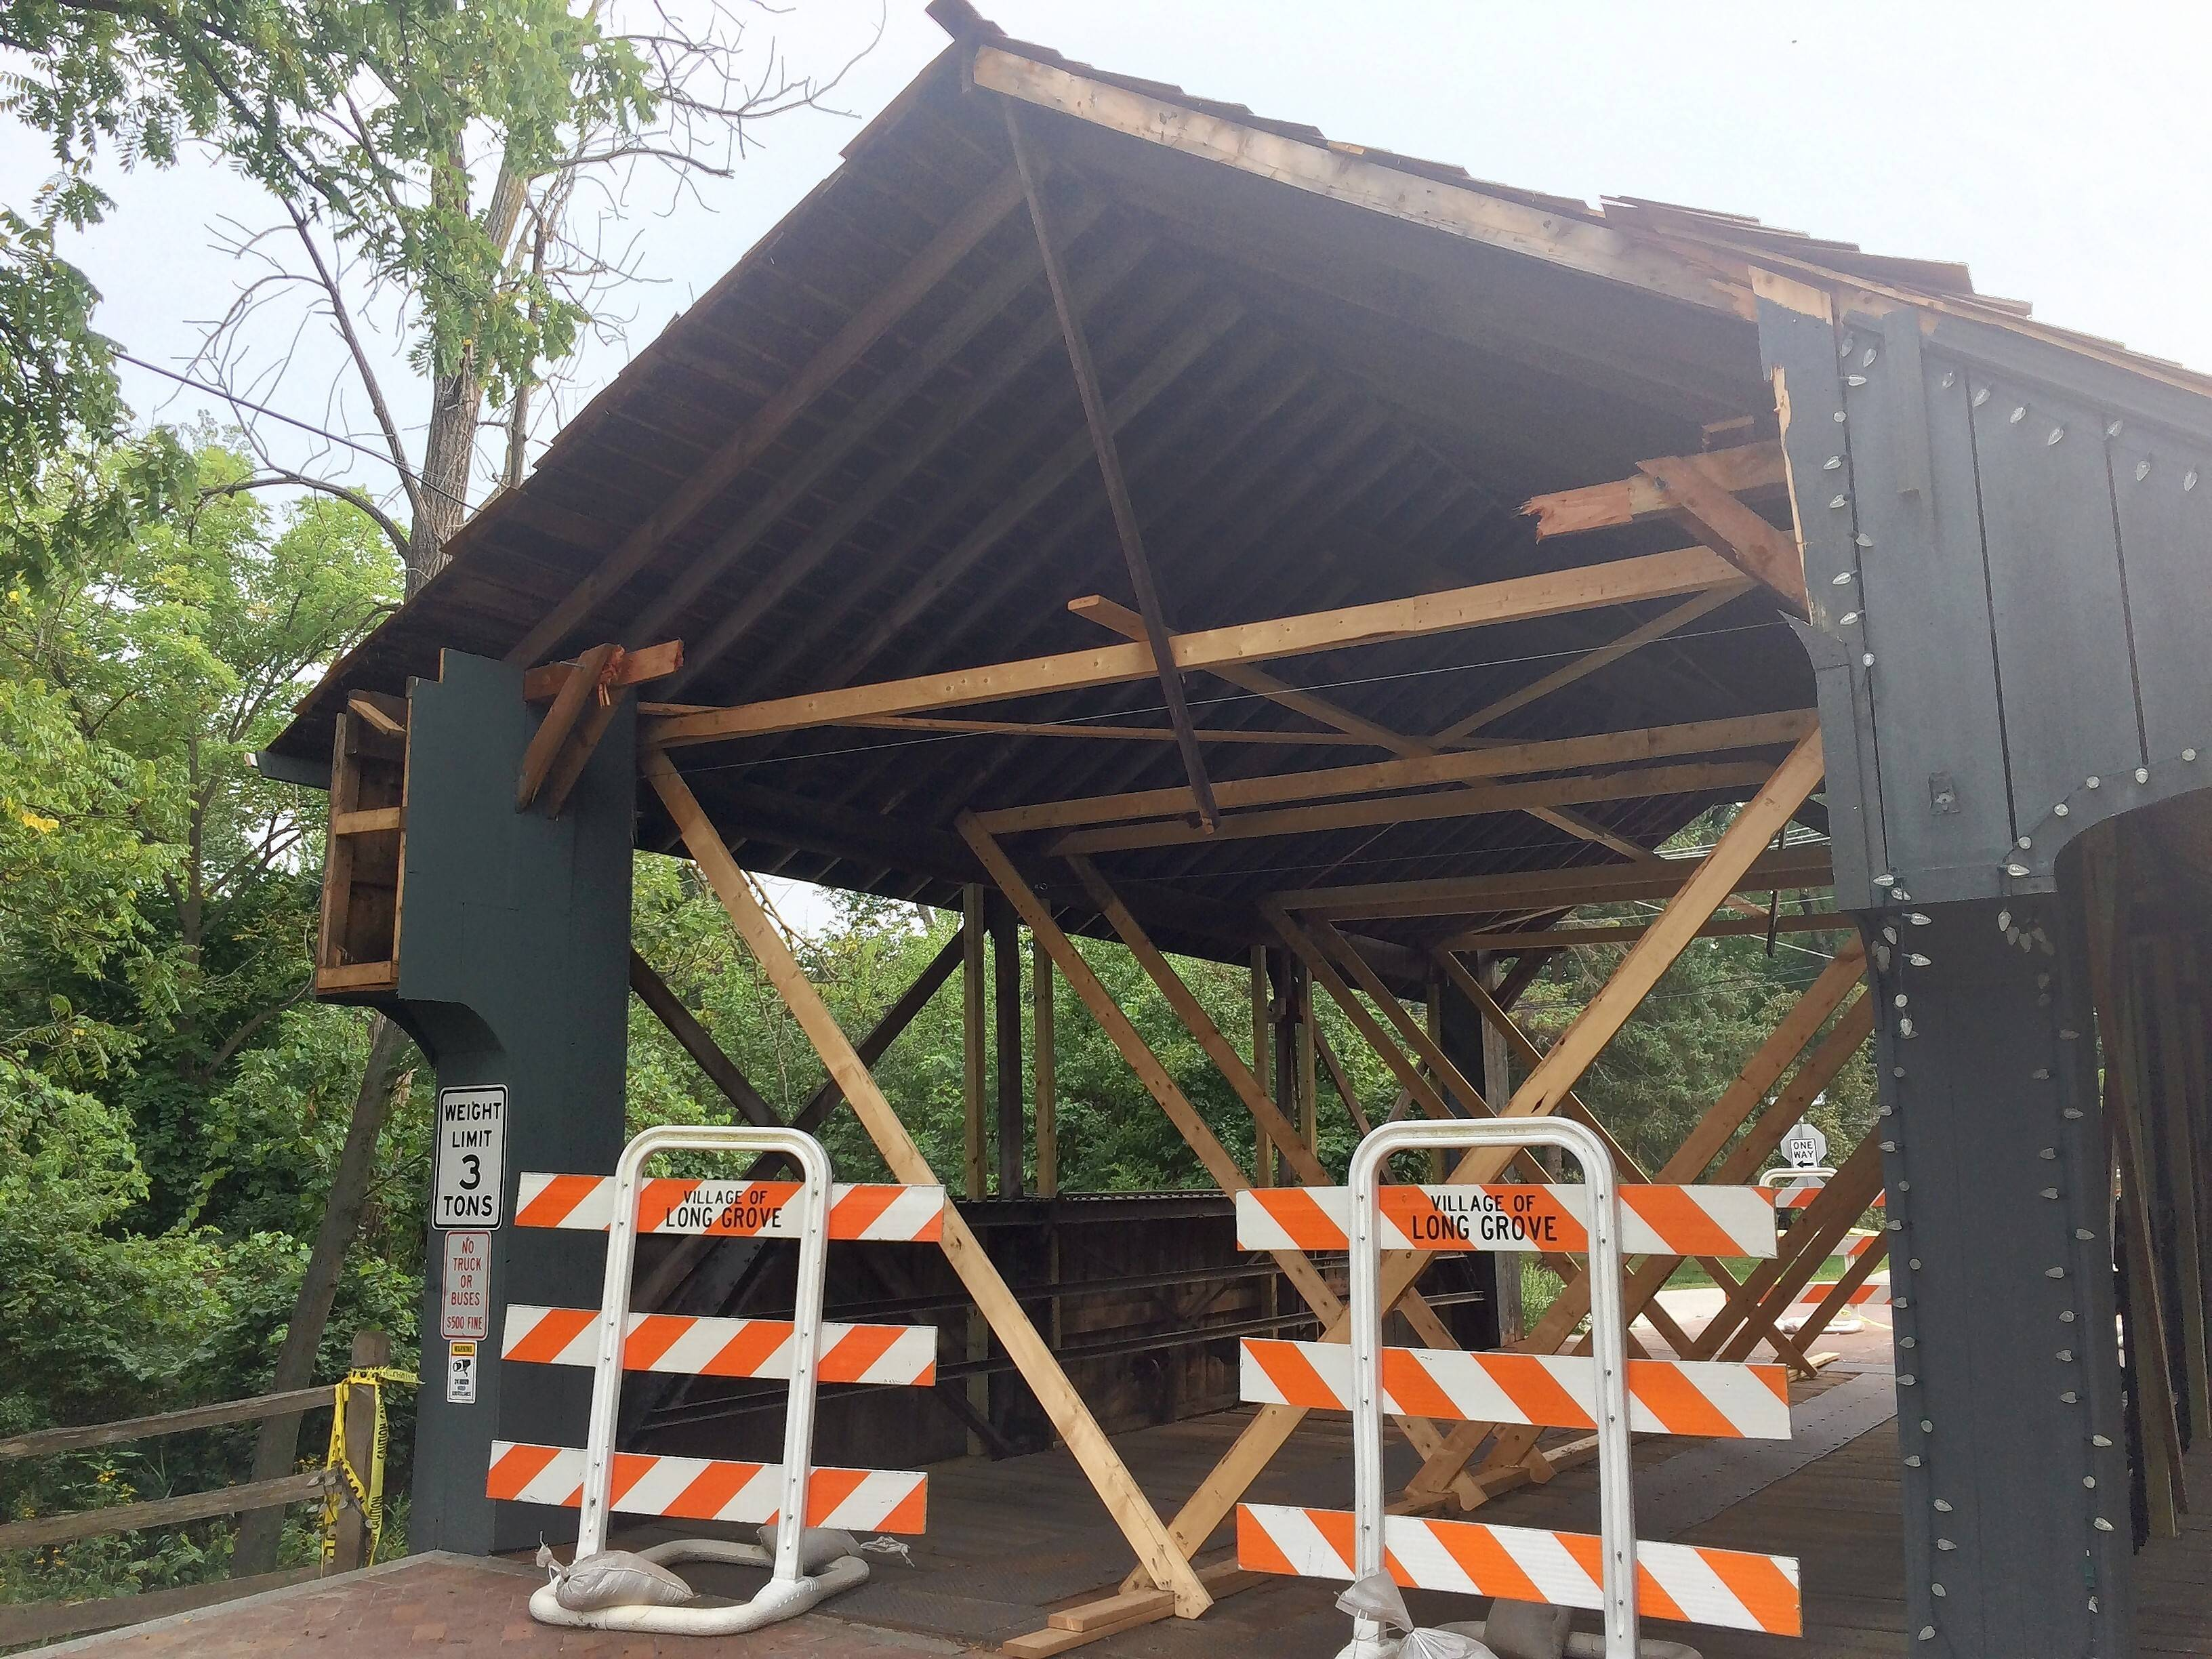 Long Grove postpones hiring company to demolish bridge cover